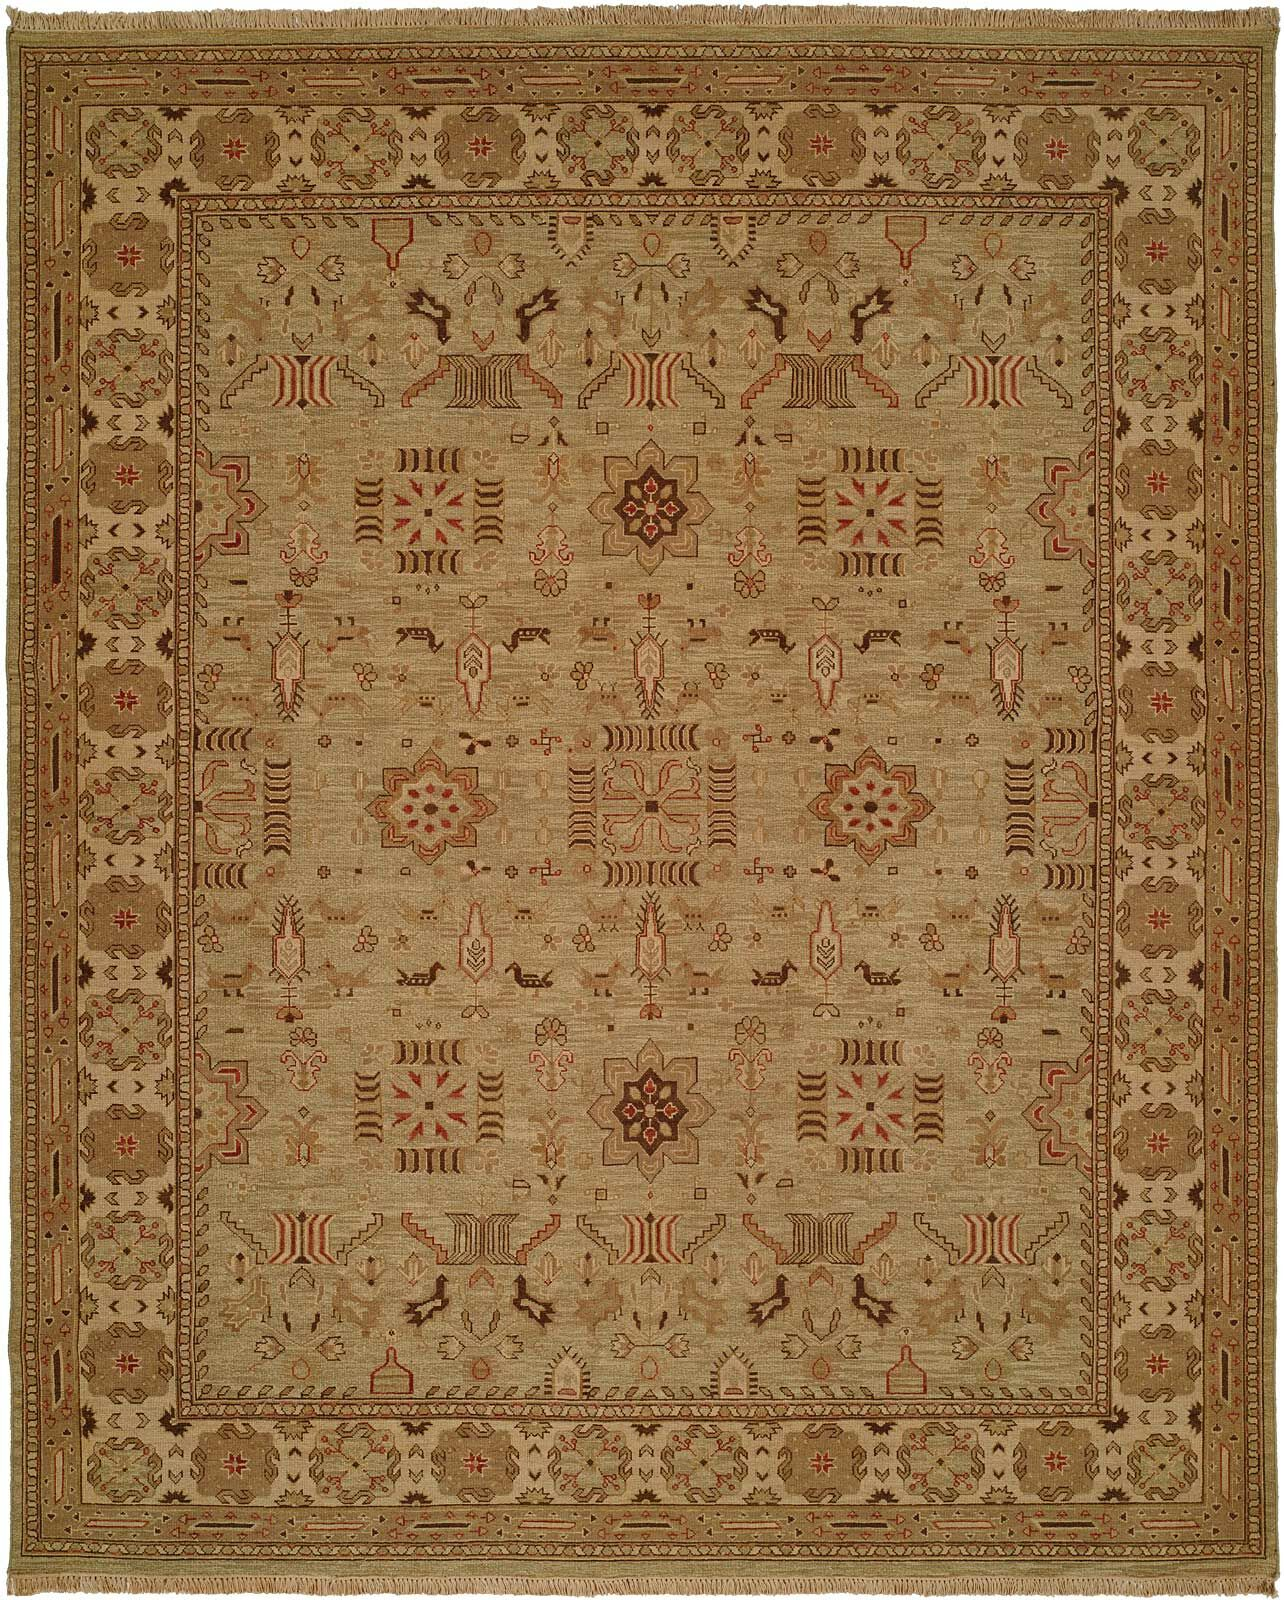 Agrawal Hand-Woven Beige Area Rug Rug Size: Round 8'